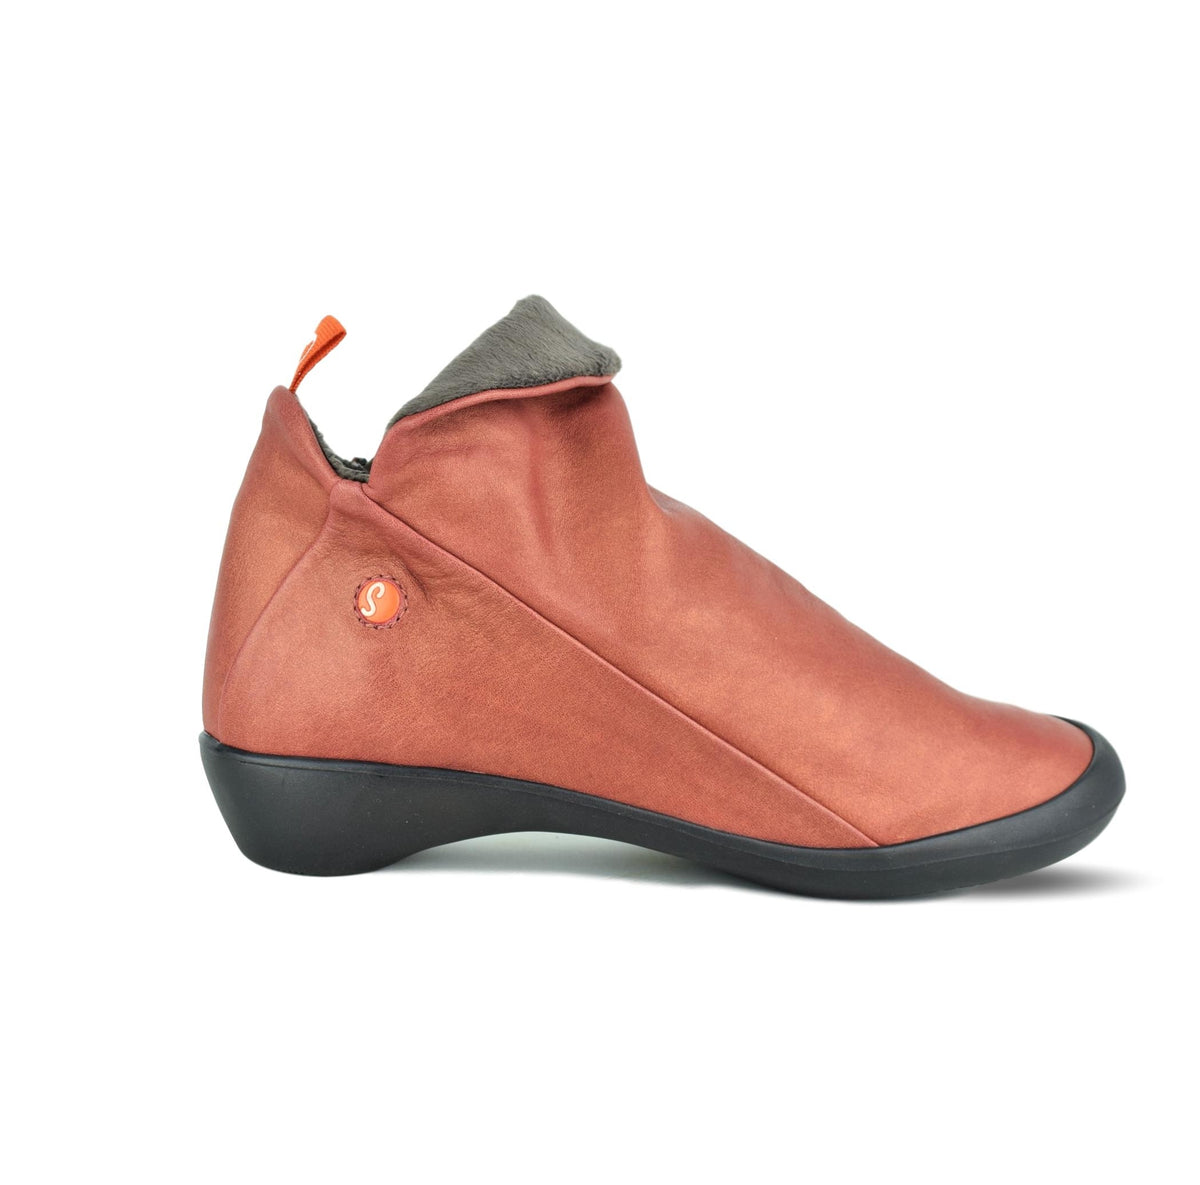 PEDRA5 - Softinos Ankle Boots Rust